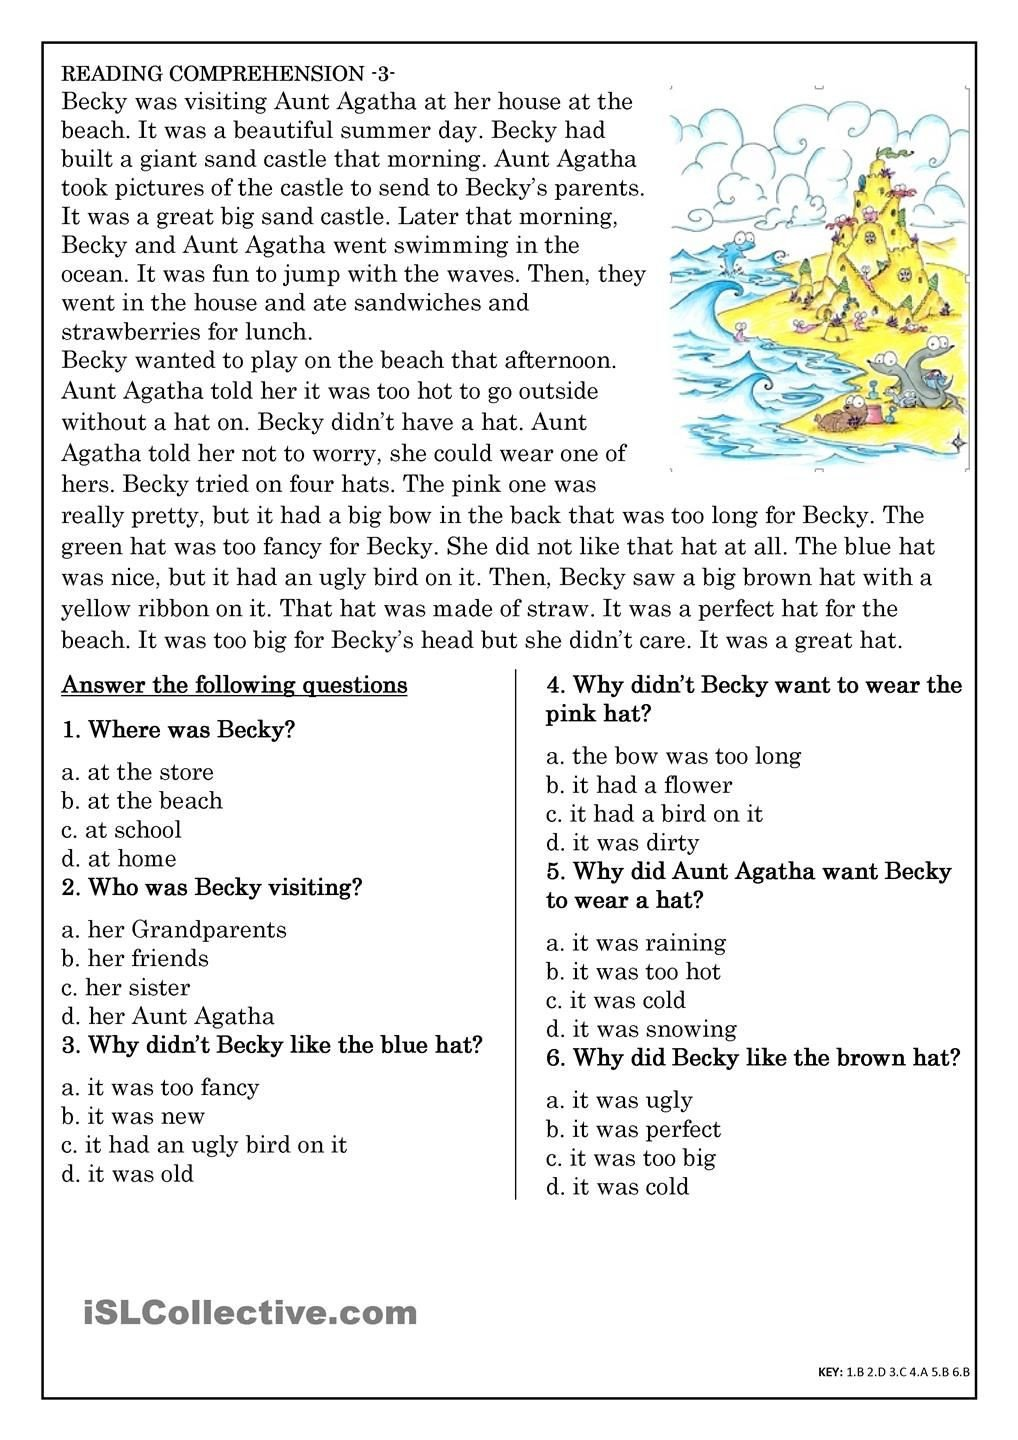 Reading Comprehension Worksheets 7th Grade Reading Prehension for Beginner and Elementary Students